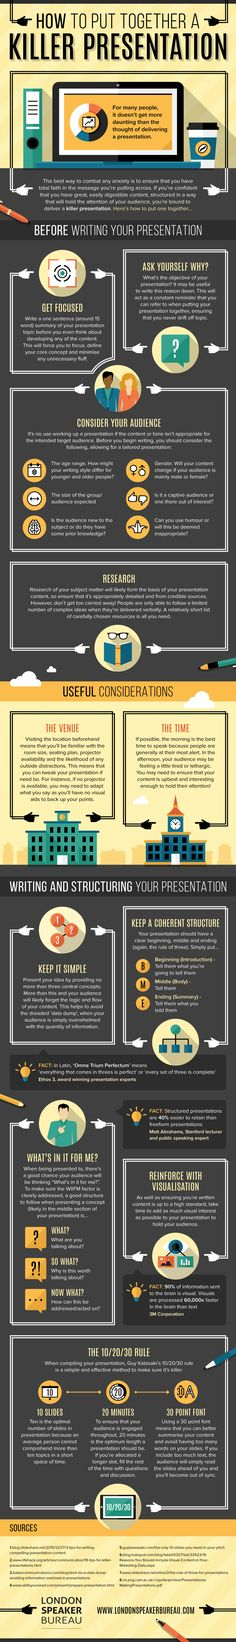 How to Put Together a Killer Presentation in 13 Simple Steps - Imgur